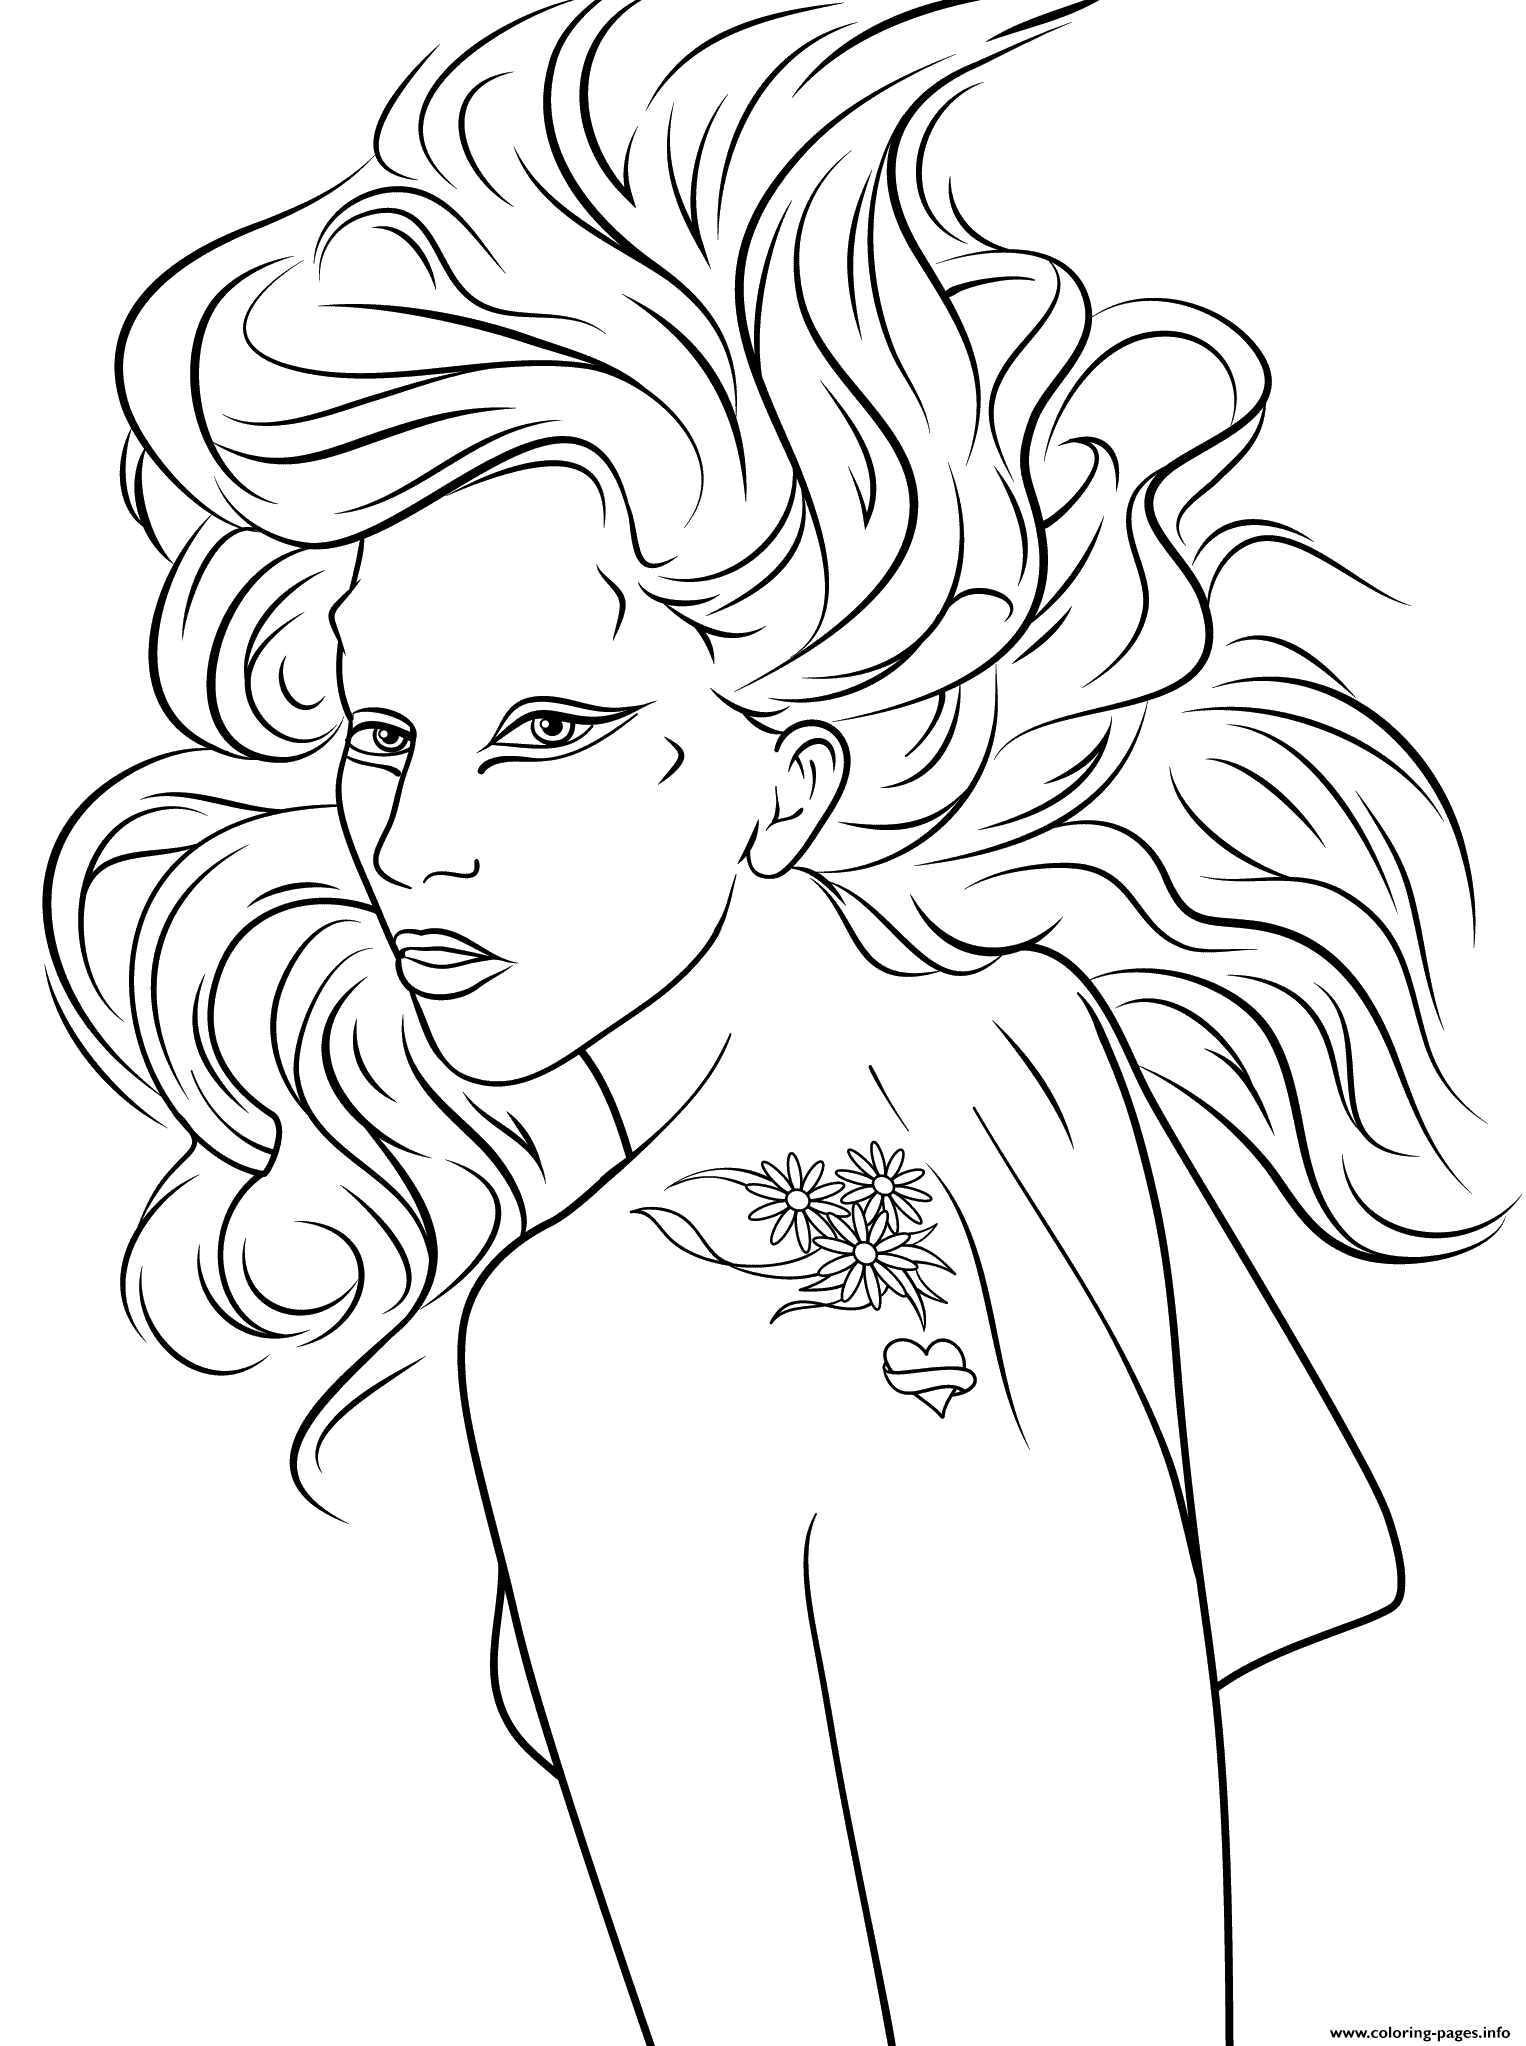 lady gaga celebrity coloring pages print download 37 prints - Celebrity Coloring Pages Print